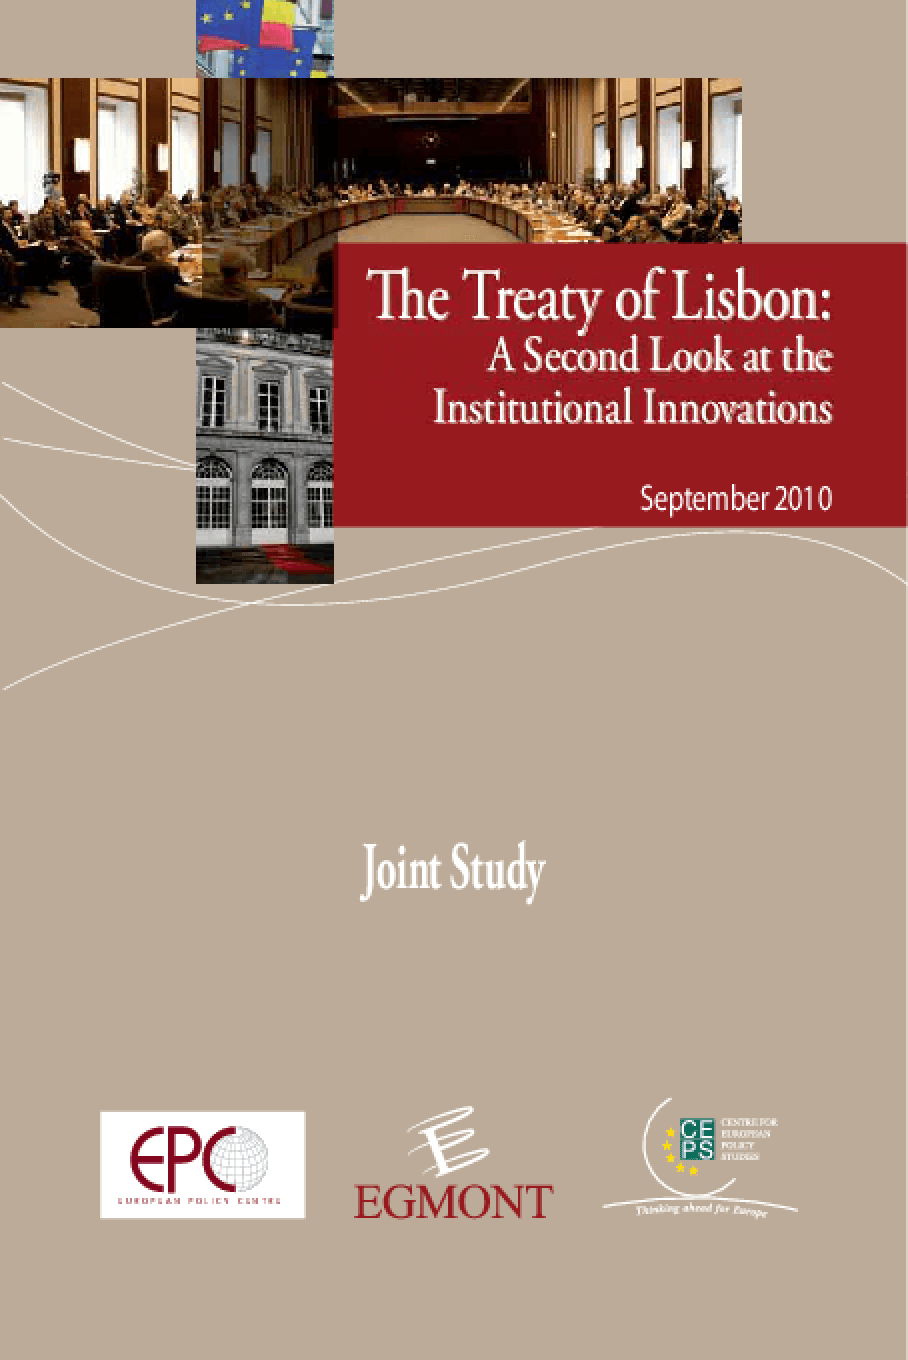 The Treaty of Lisbon: A Second Look at the Institutional Innovations